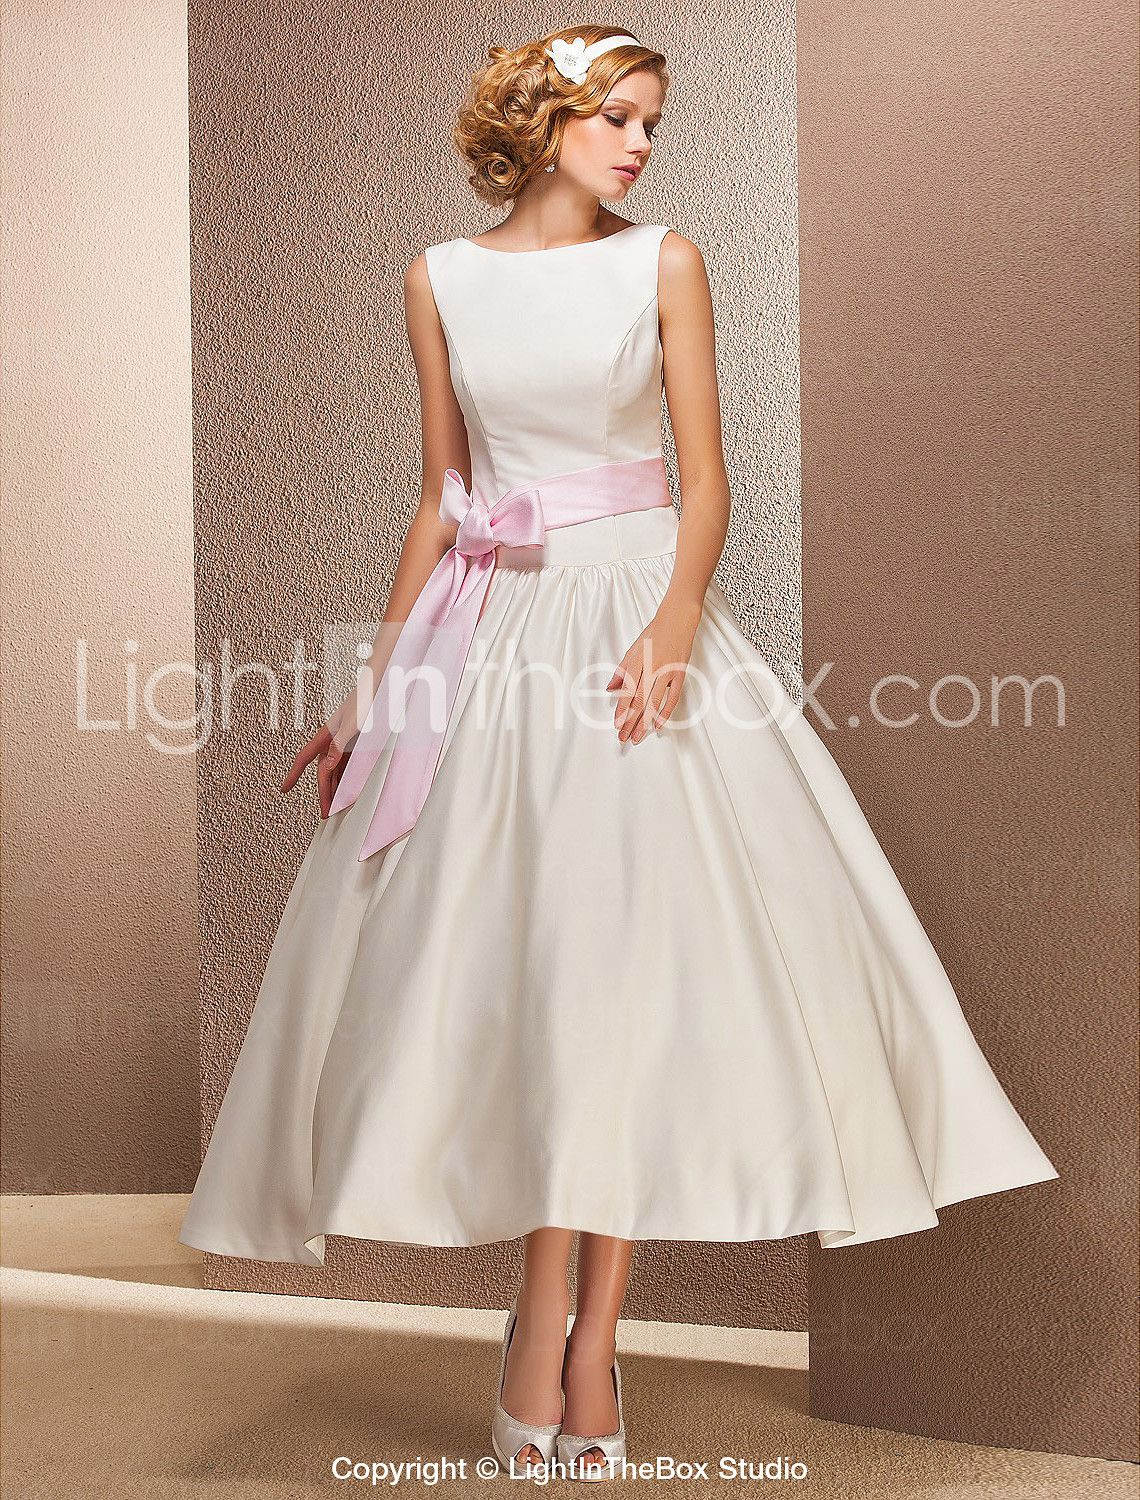 Lightinthebox wedding dresses  Princess Bateau Neck Tea Length Satin MadeToMeasure Wedding